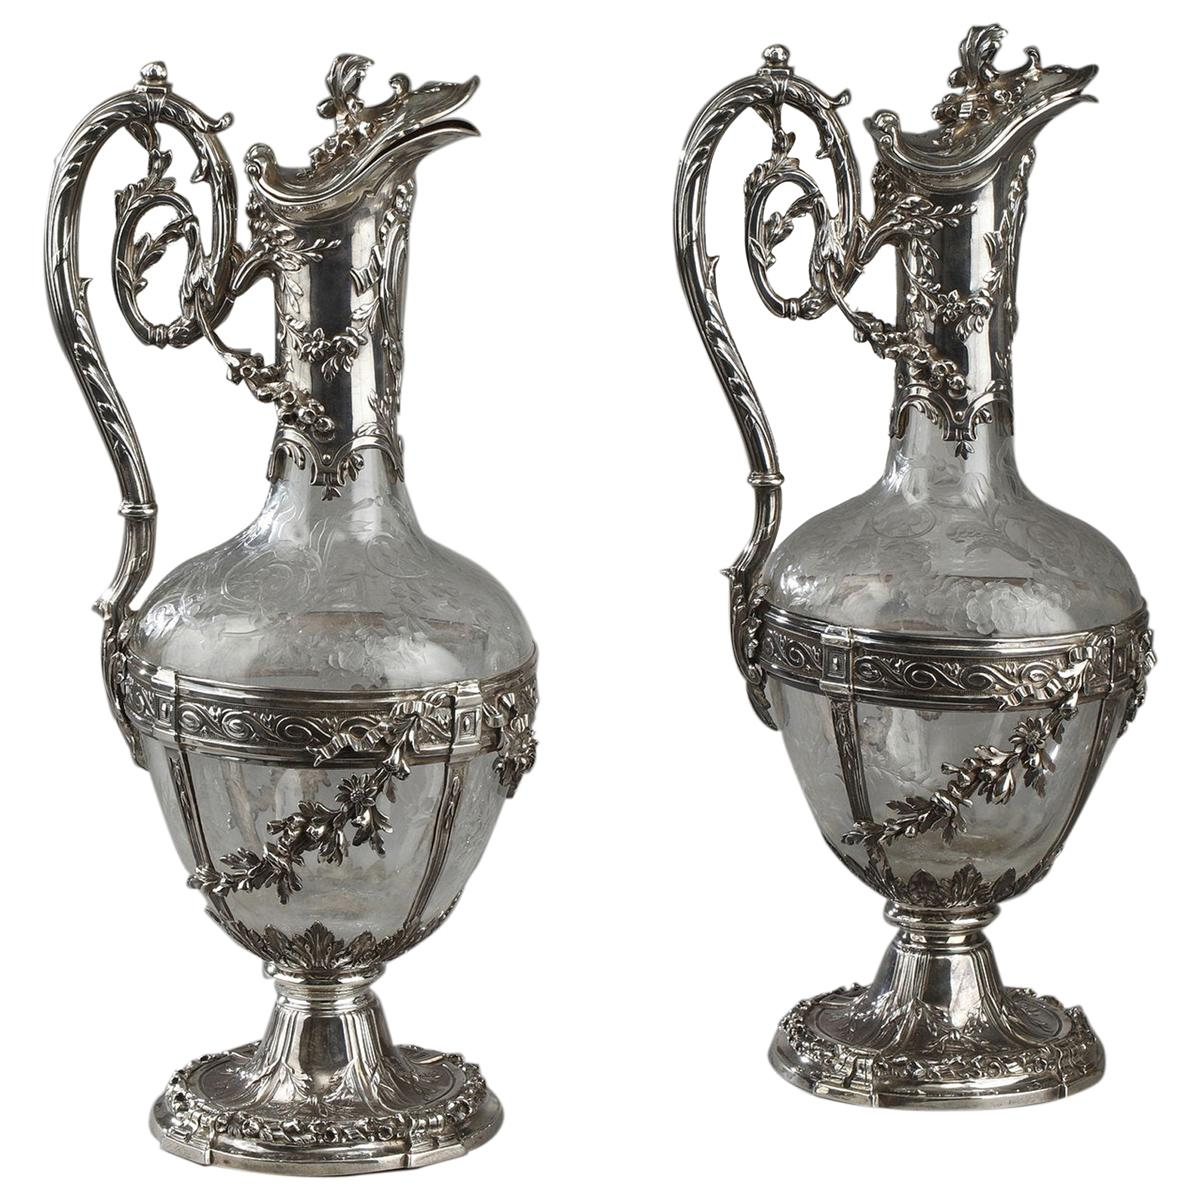 Pair of Cut-Glass Silver-Mounted Decanters, 19th Century, Edmond Tétard